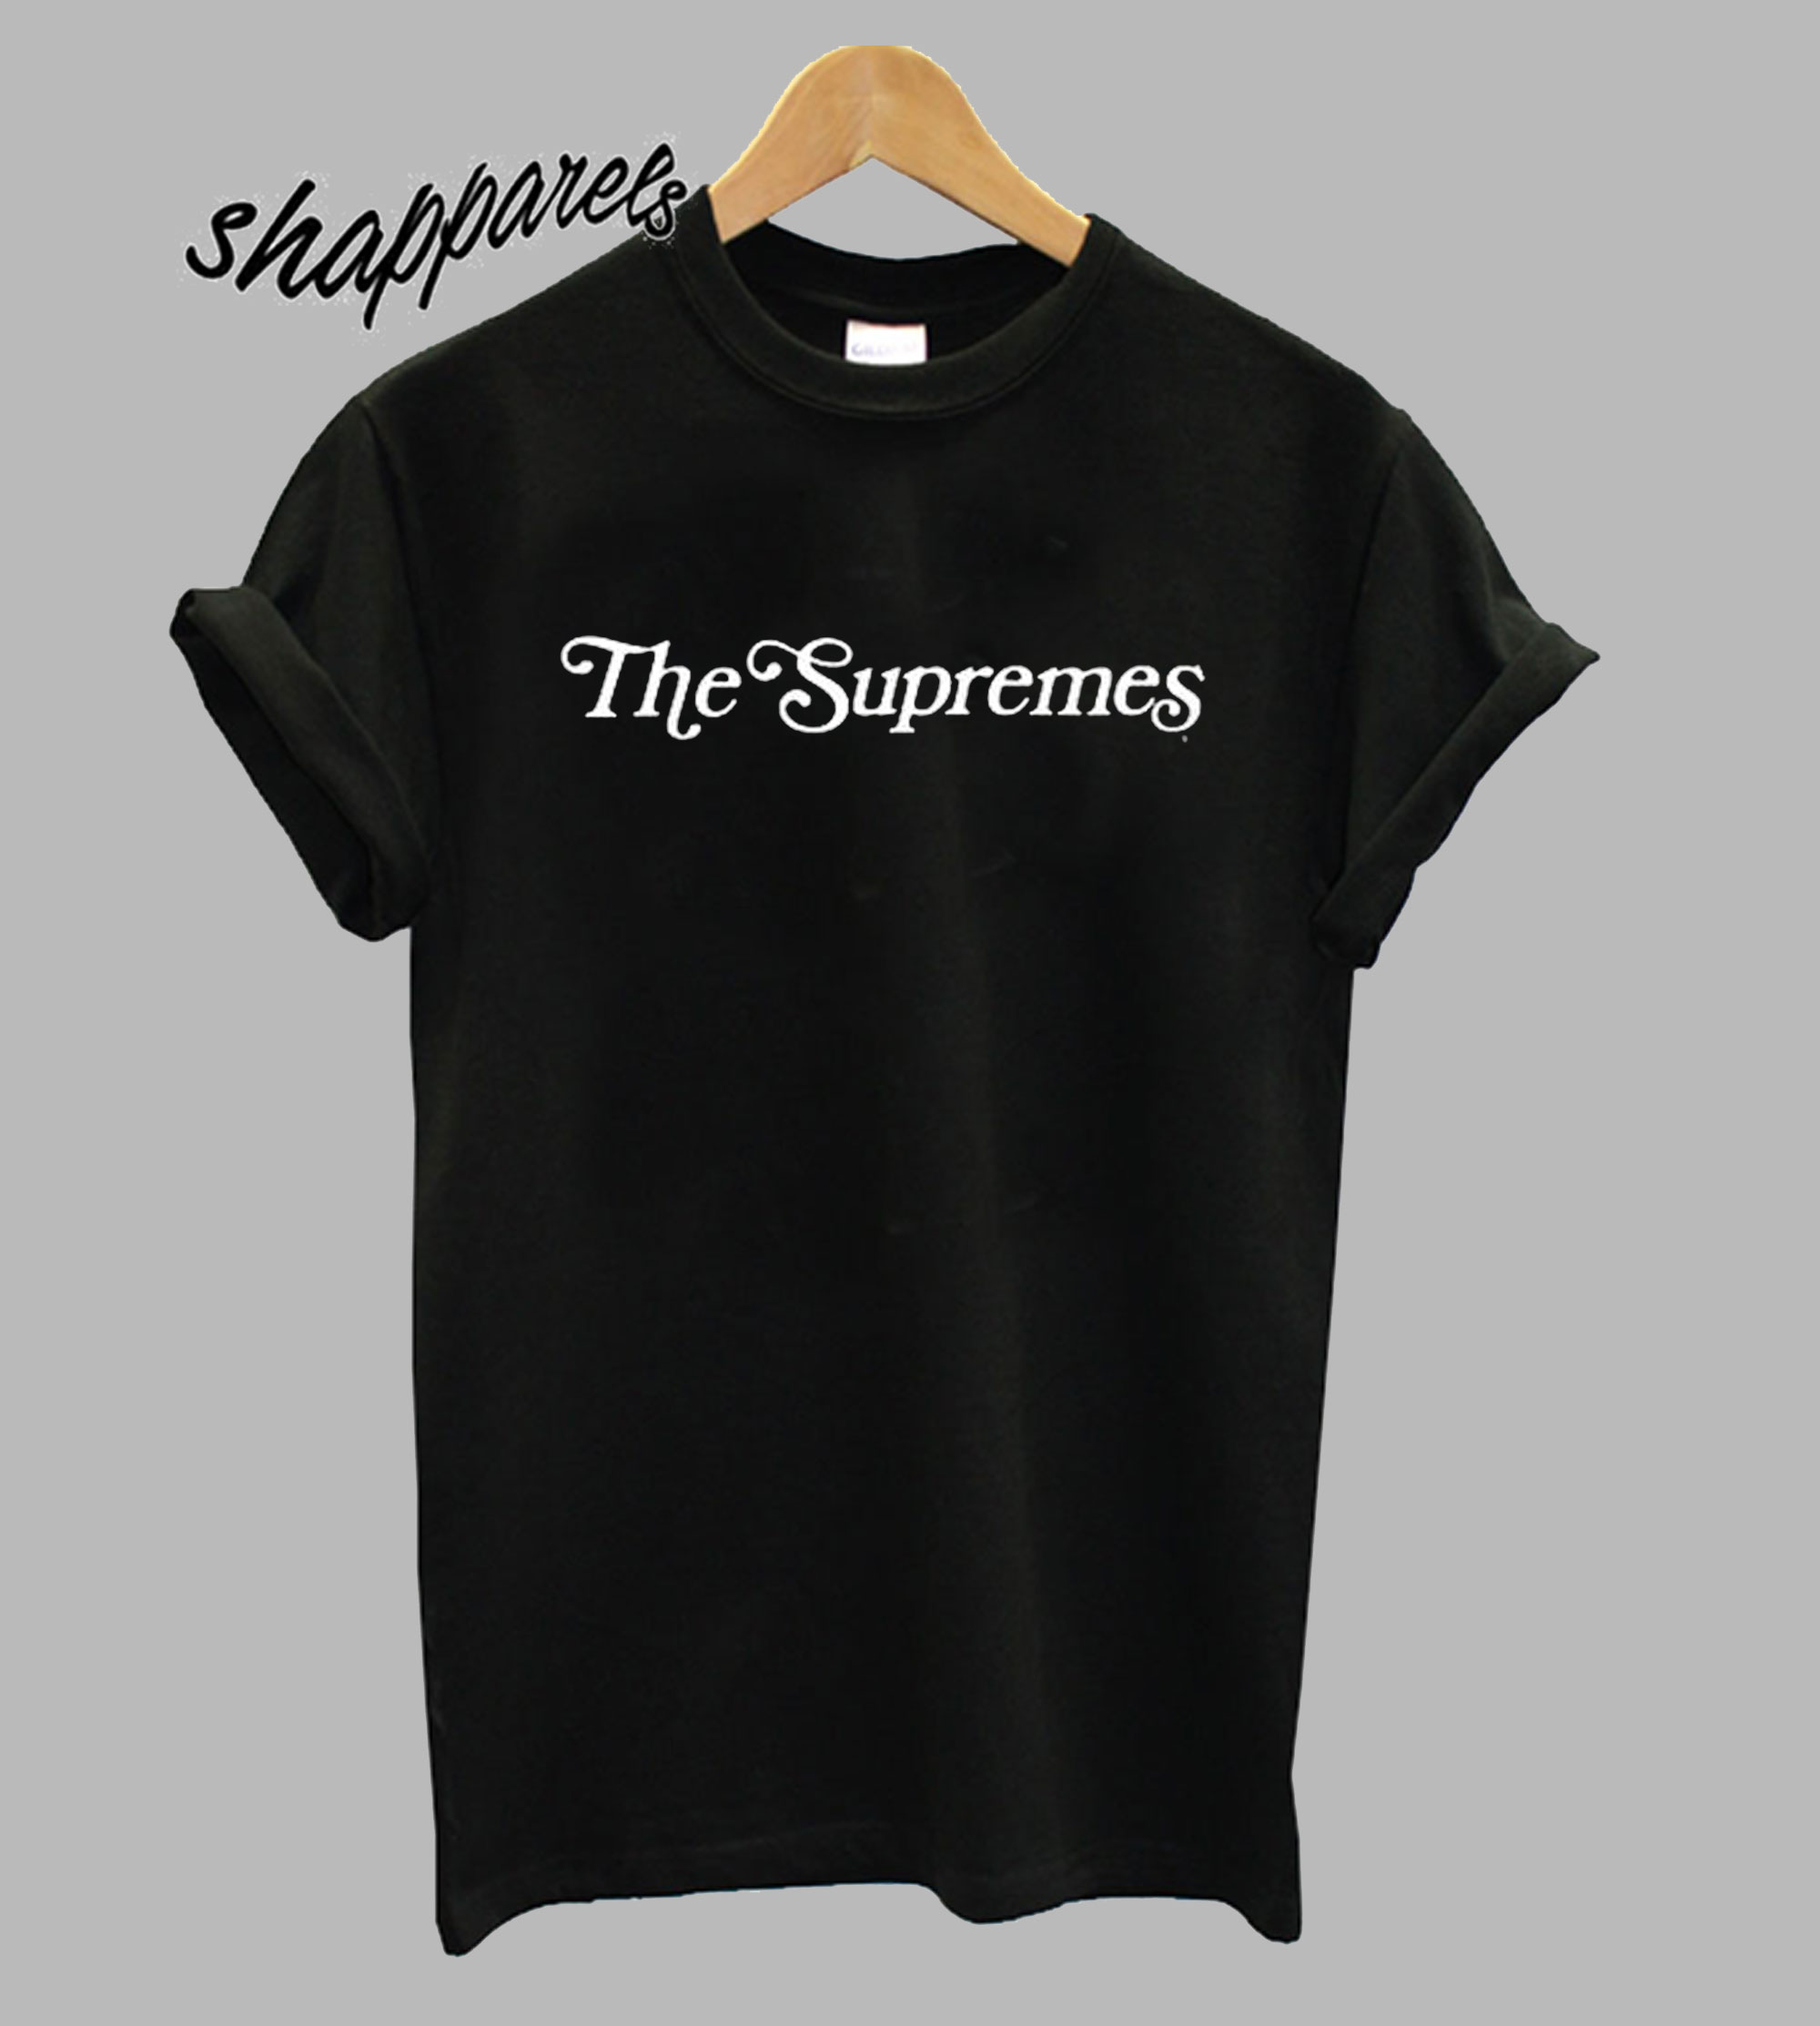 #The Supremes T shirt